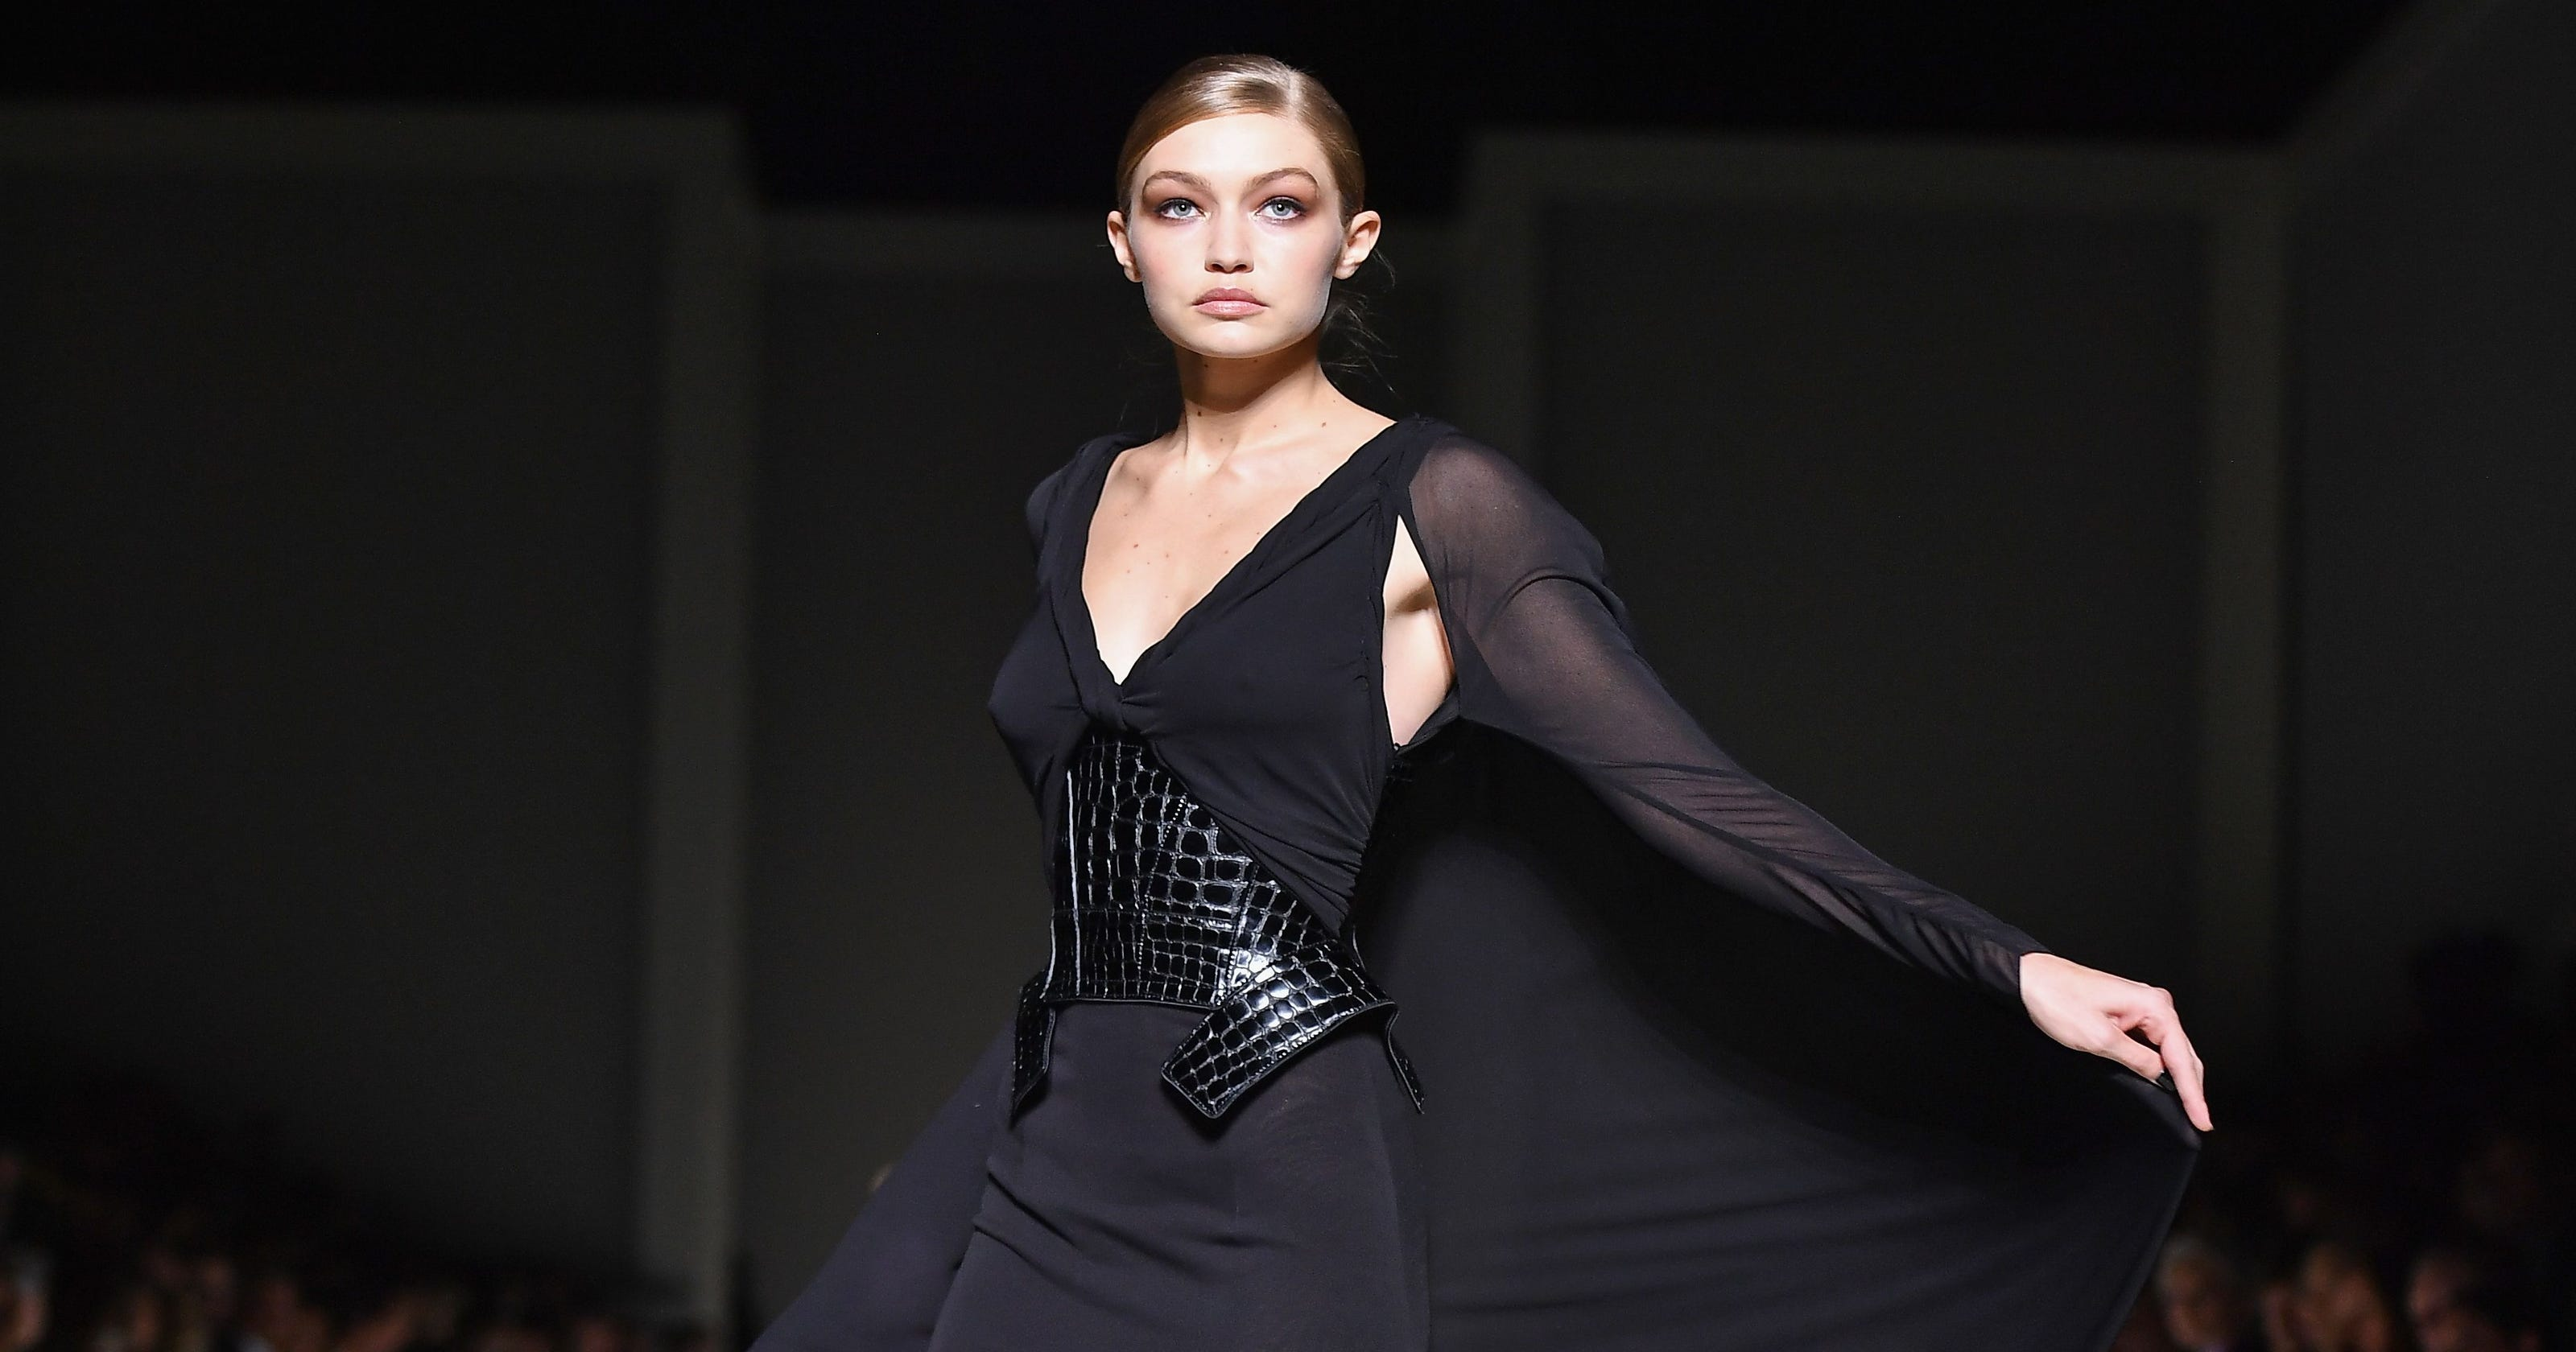 New York Fashion Week  Tom Ford kicks off Day 1 with star-studded show f61067a21bb6